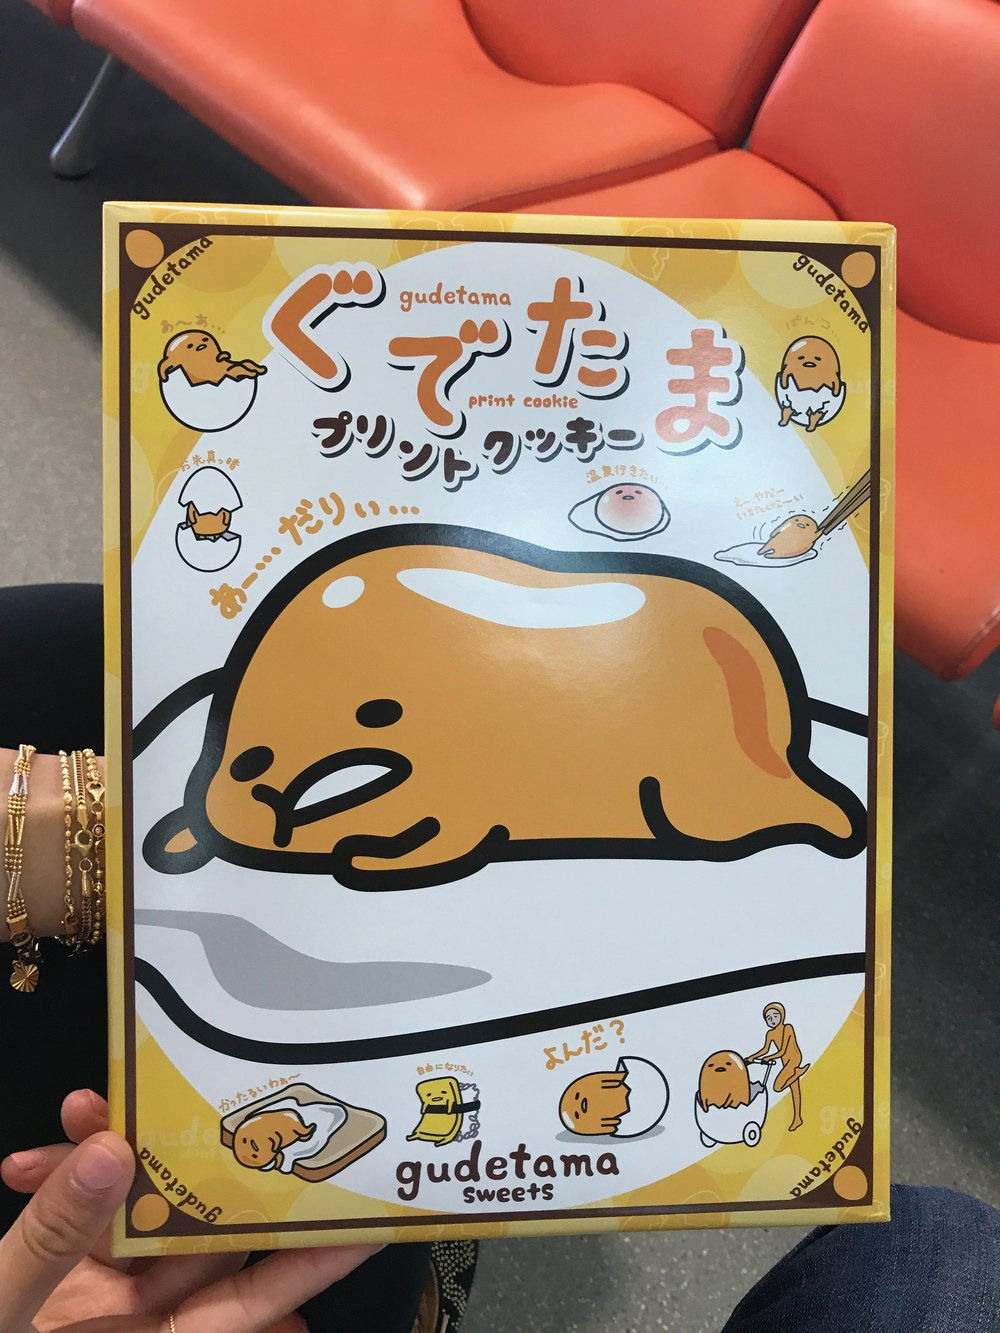 gudetama became my favorite character